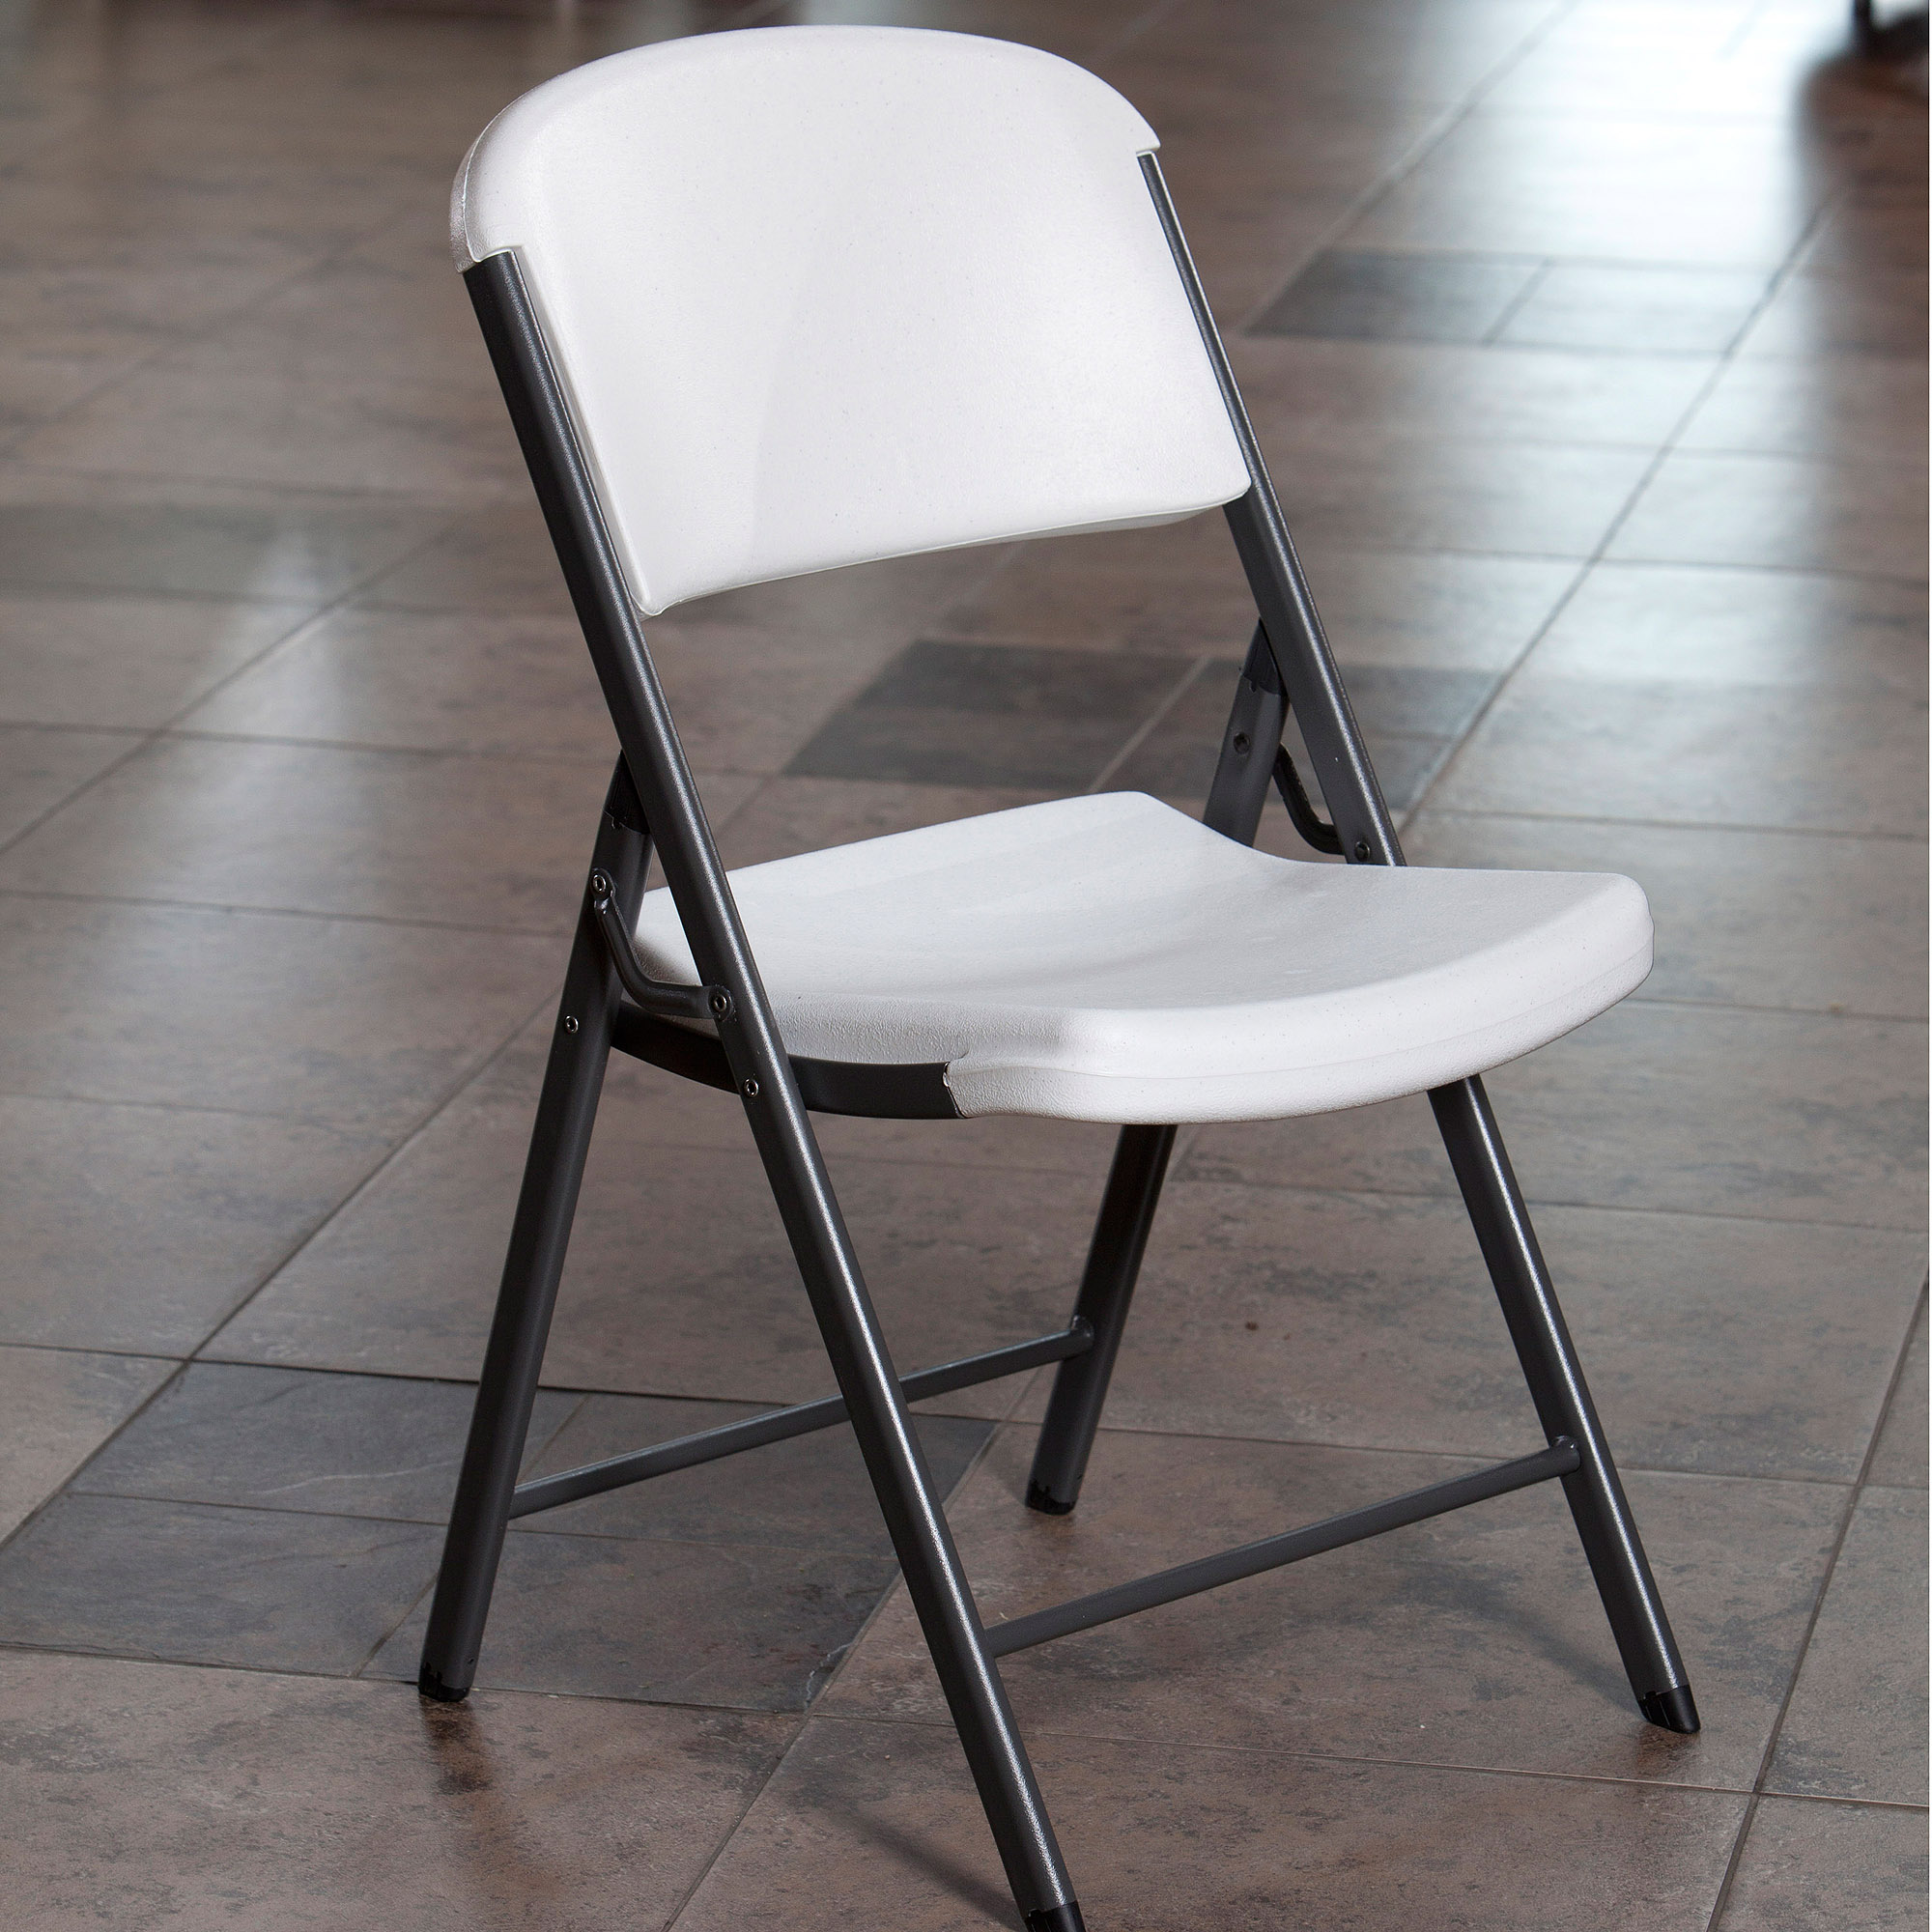 Get comfort and ease with foldable chairs